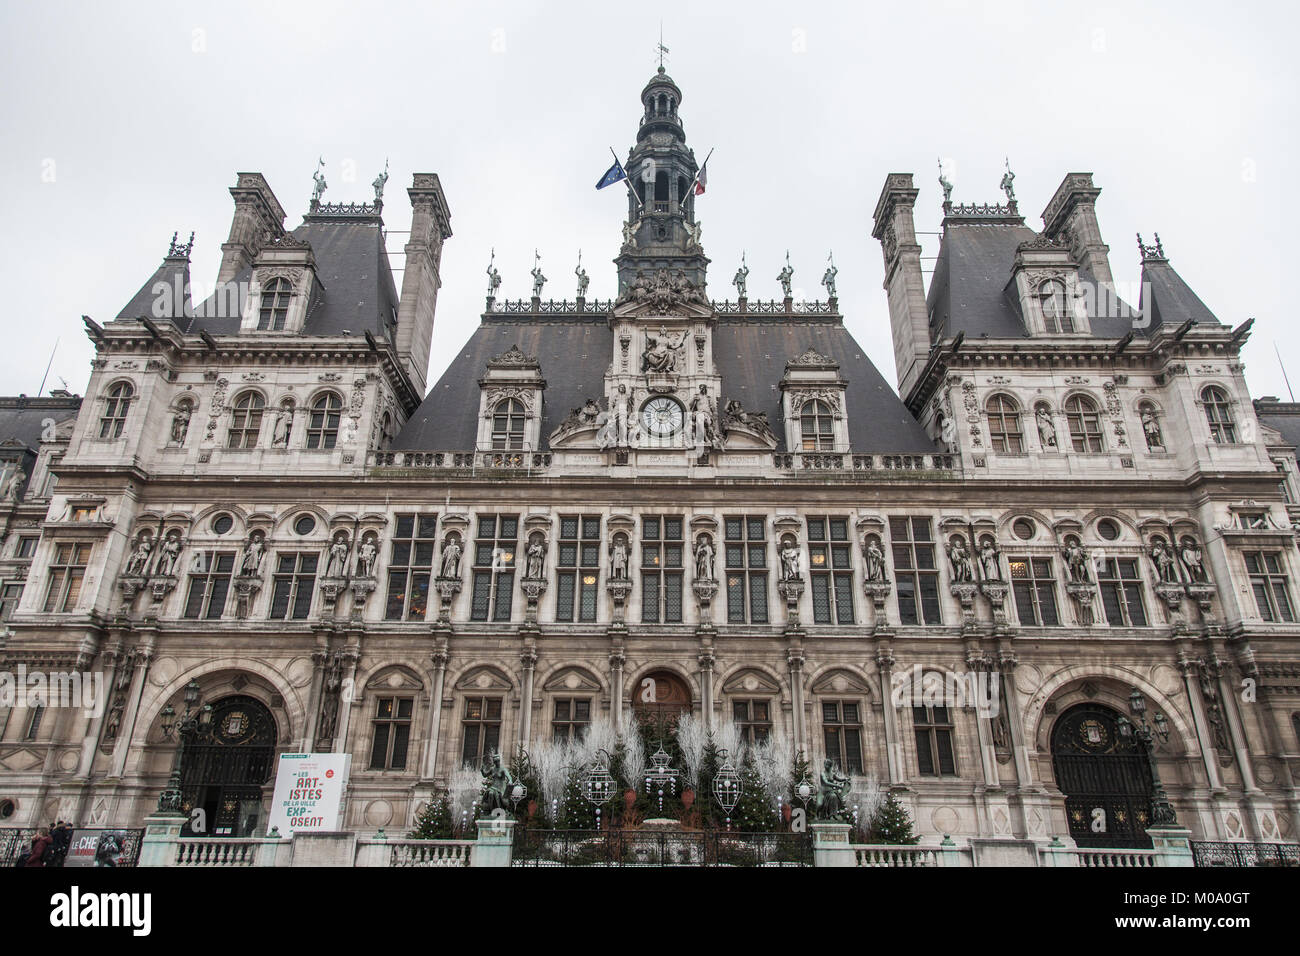 PARIS, FRANCE - DECEMBER 20, 2017:  Paris City Hall (Hotel de Ville) taken in winter during a cloudy afternoon. - Stock Image